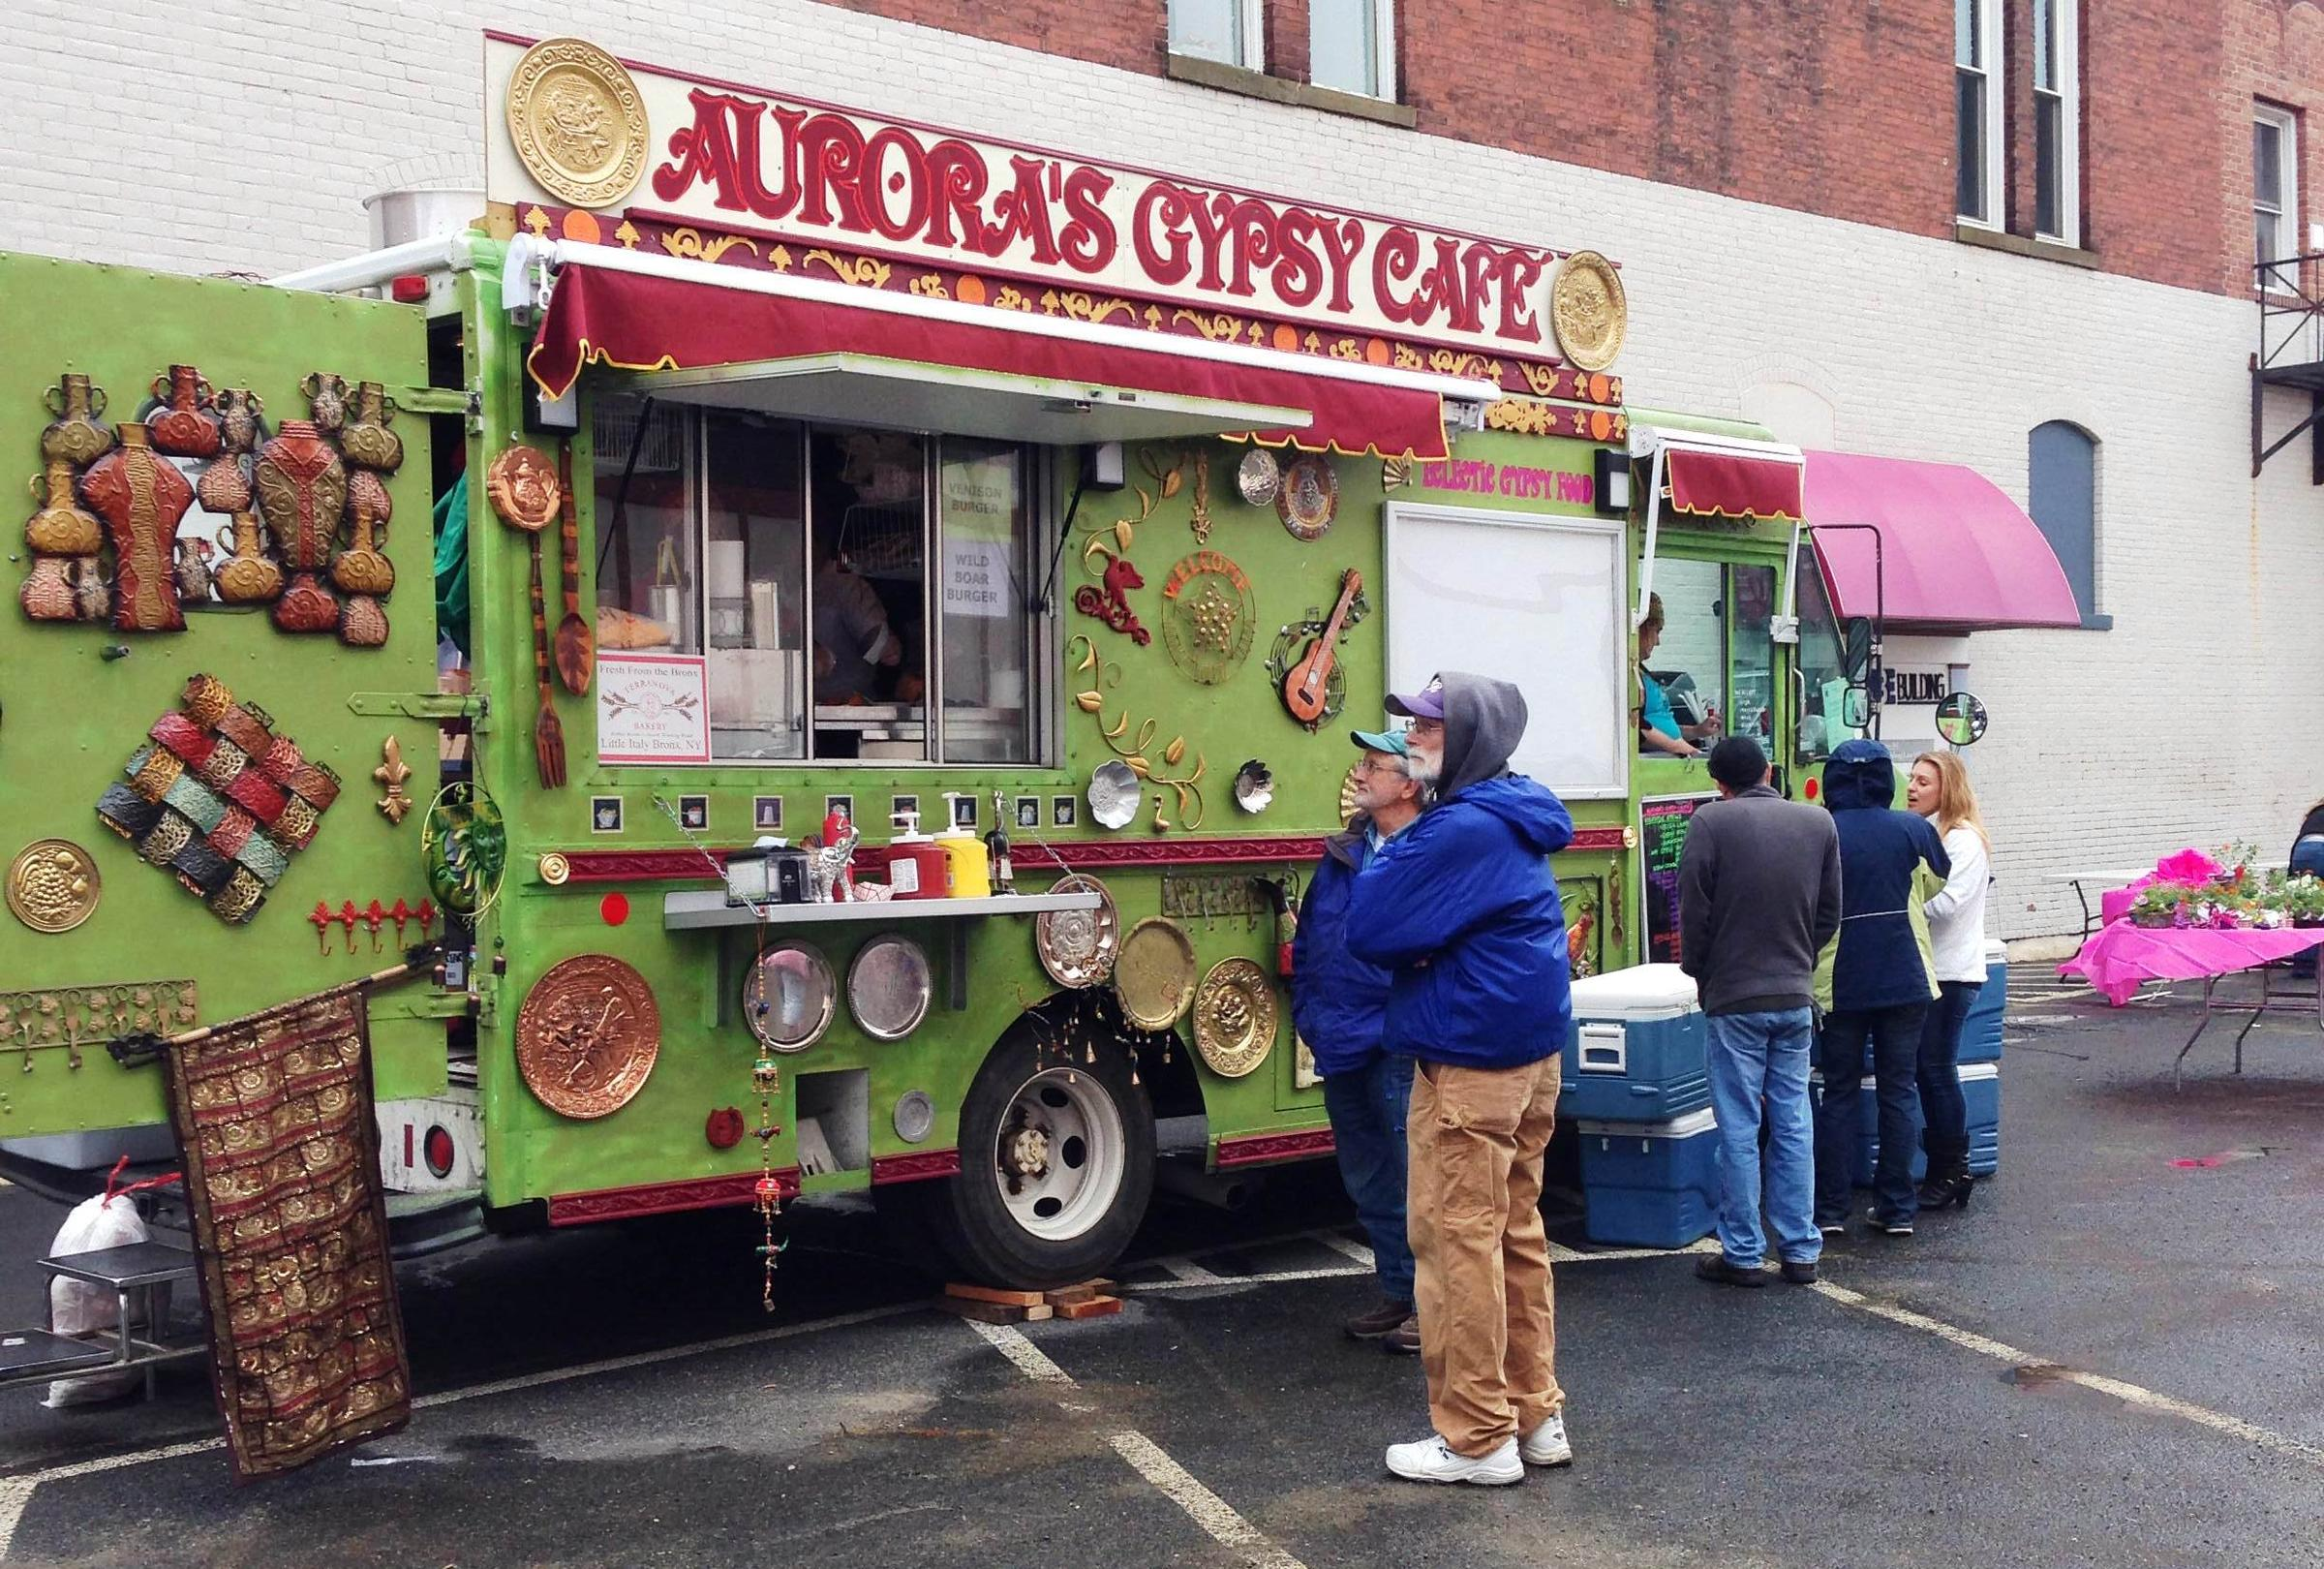 Pittsfield Food Truck Rodeo Offers Unique Sights, Sounds ...